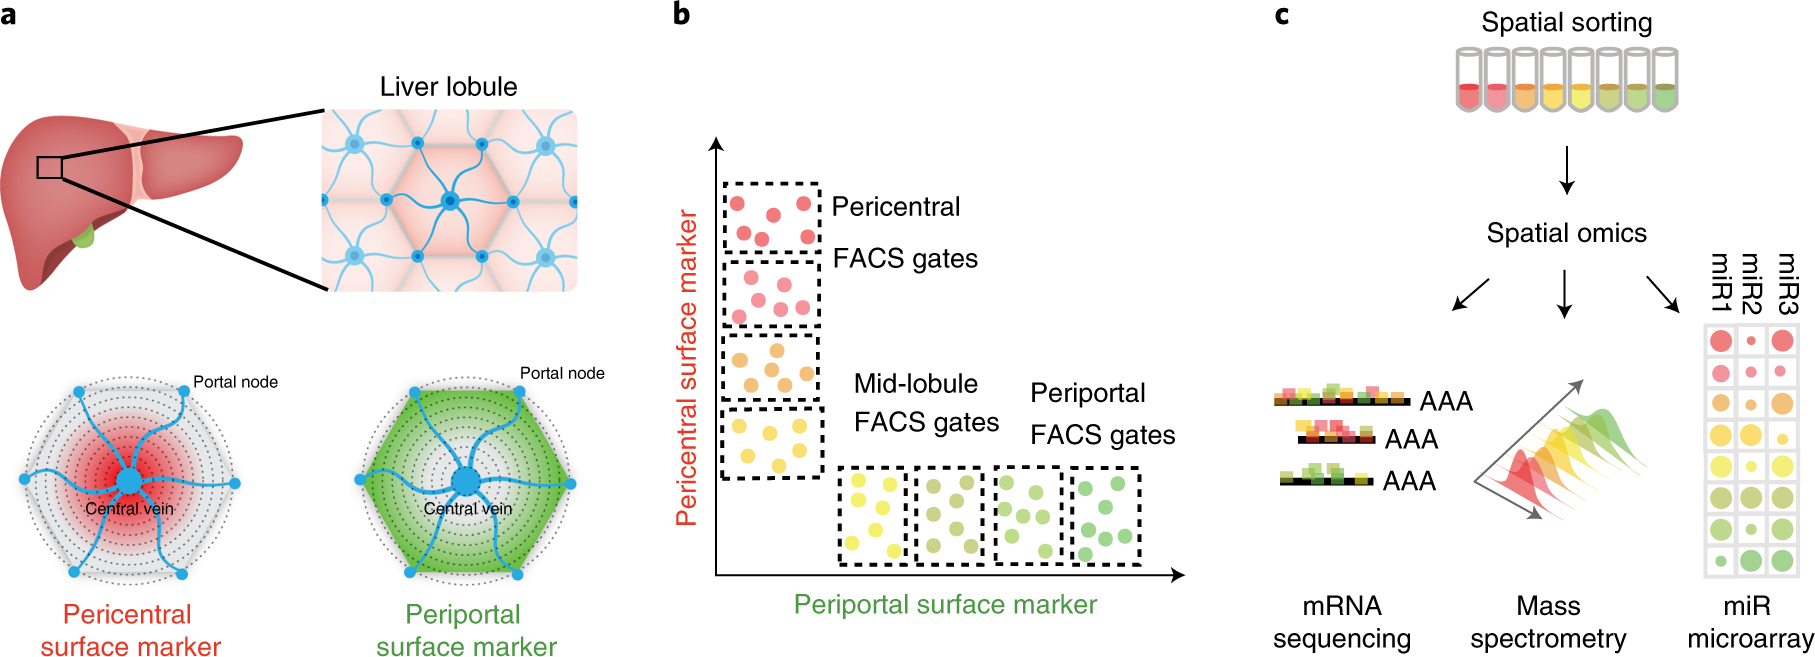 Spatial sorting enables comprehensive characterization of liver zonati